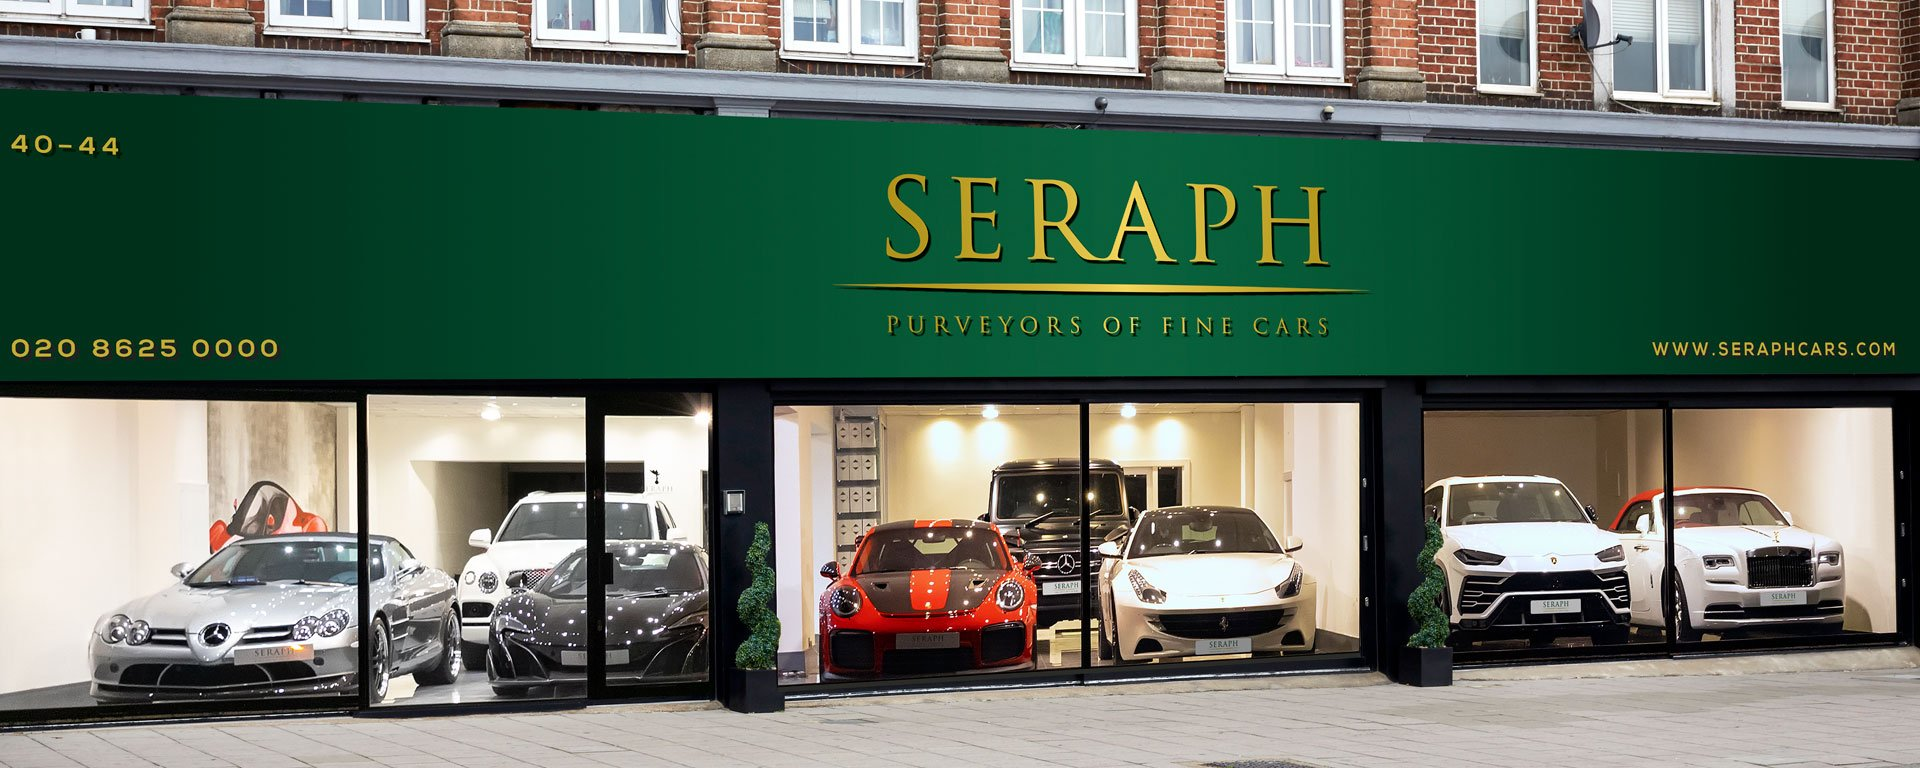 Seraph Cars London Showroom